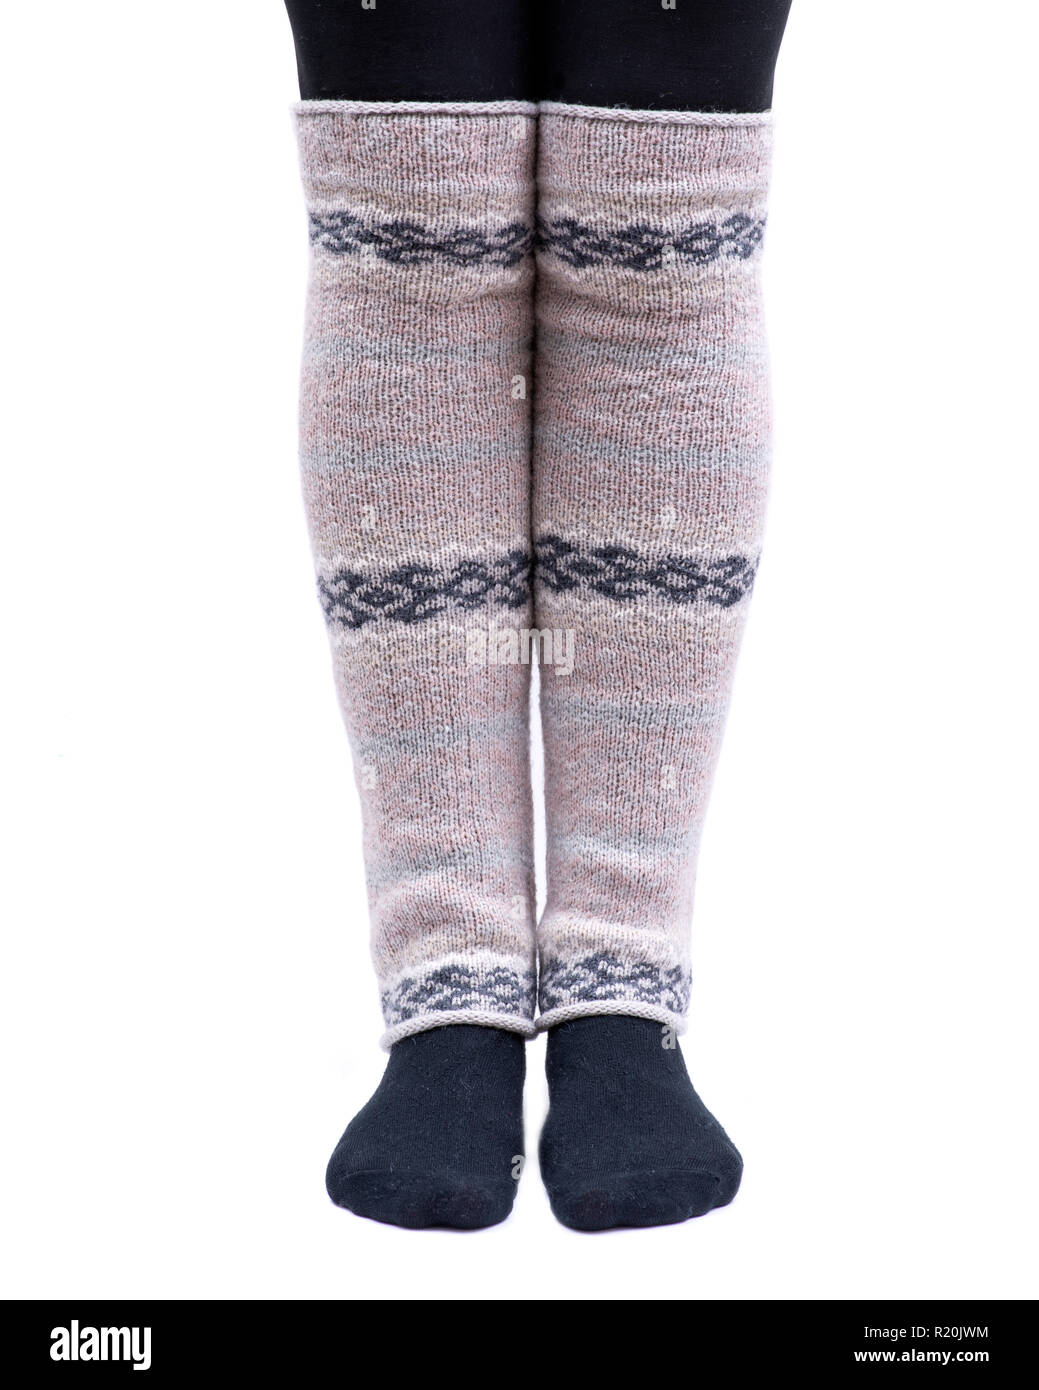 2019 year lifestyle- Wear to what with white leg warmers